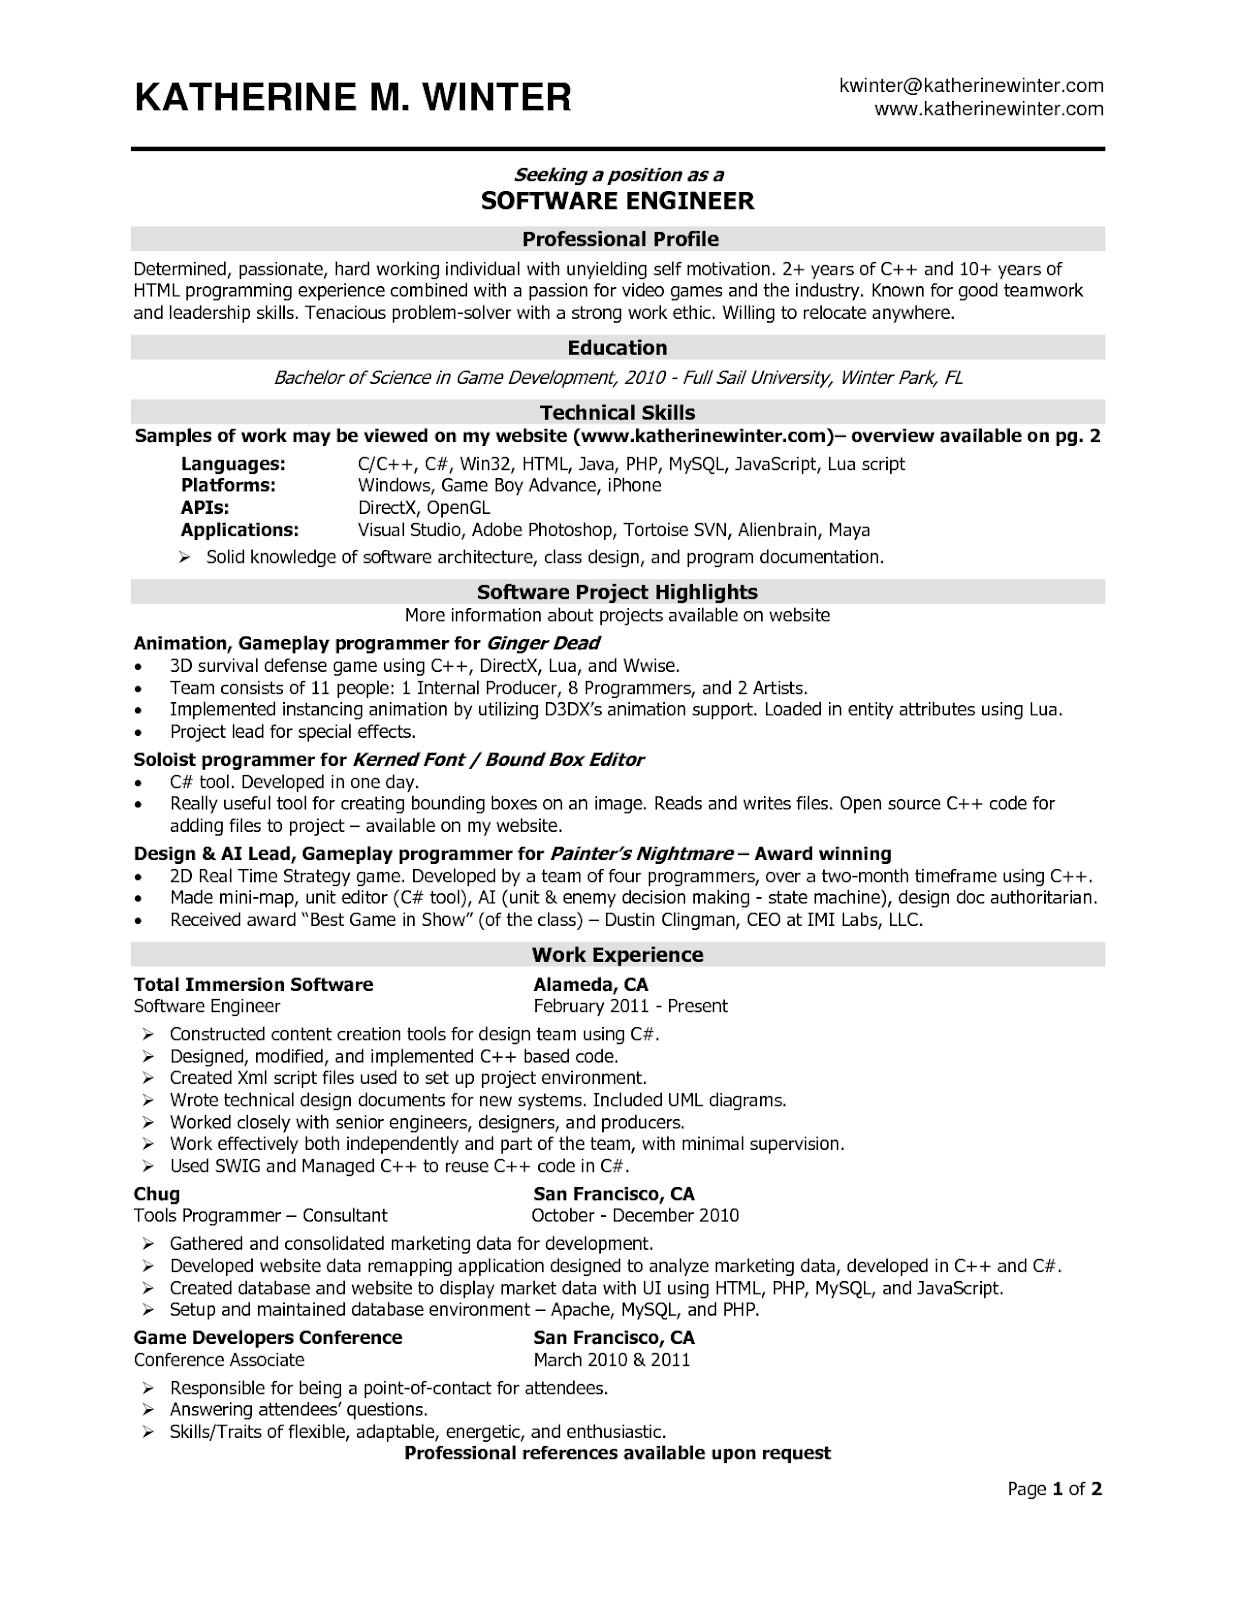 Resume Examples Engineering Software Engineer Resume Samples Sample Resumes